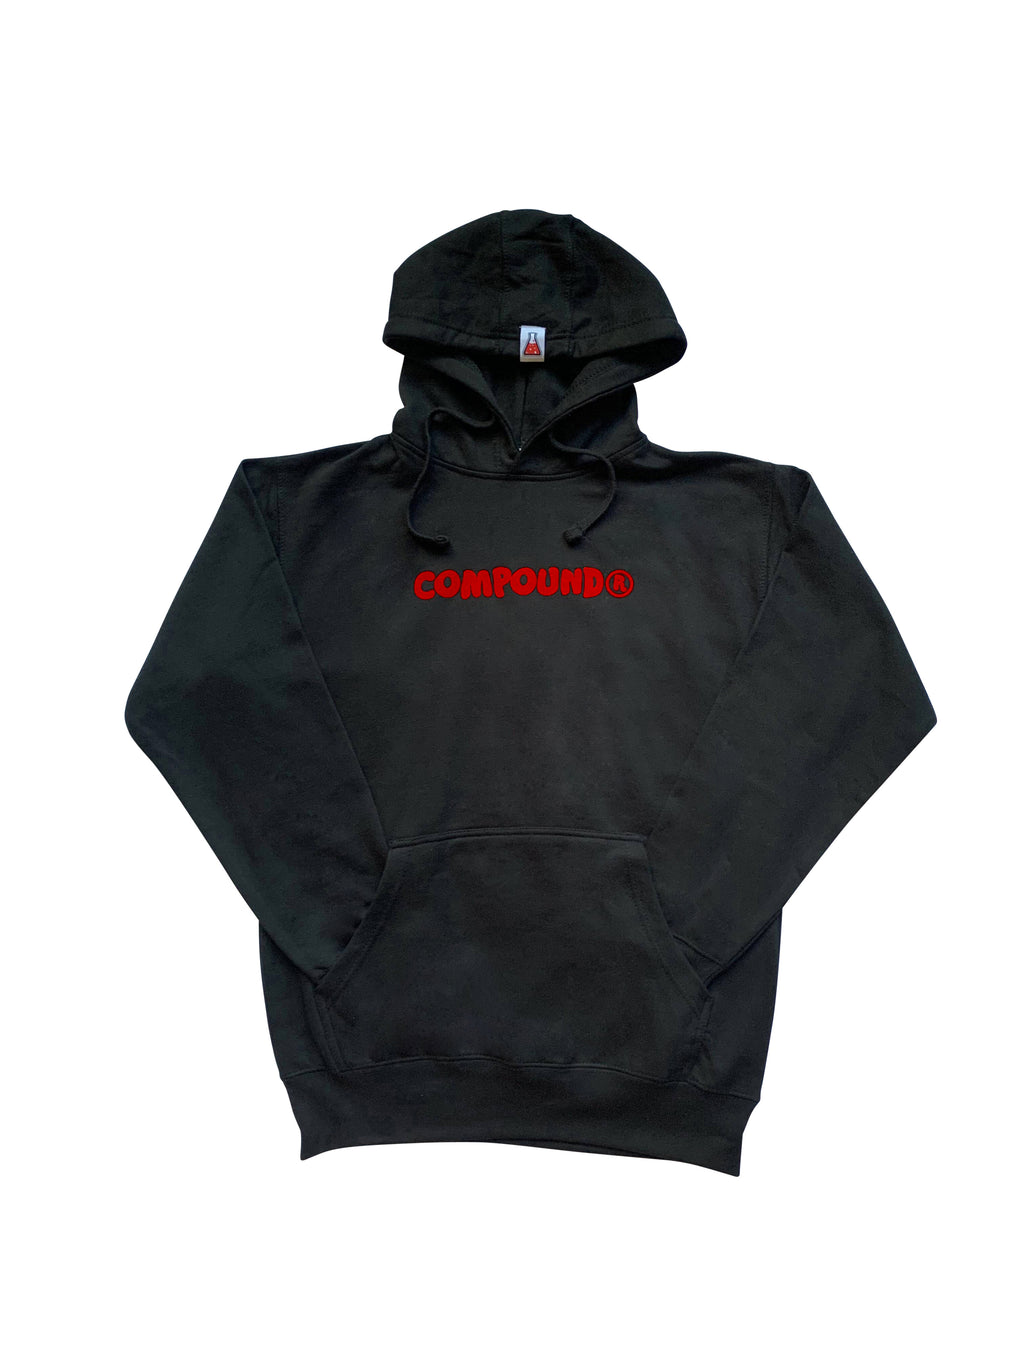 Compound Marshmallow Fleece Pullover Hoodie (Black)